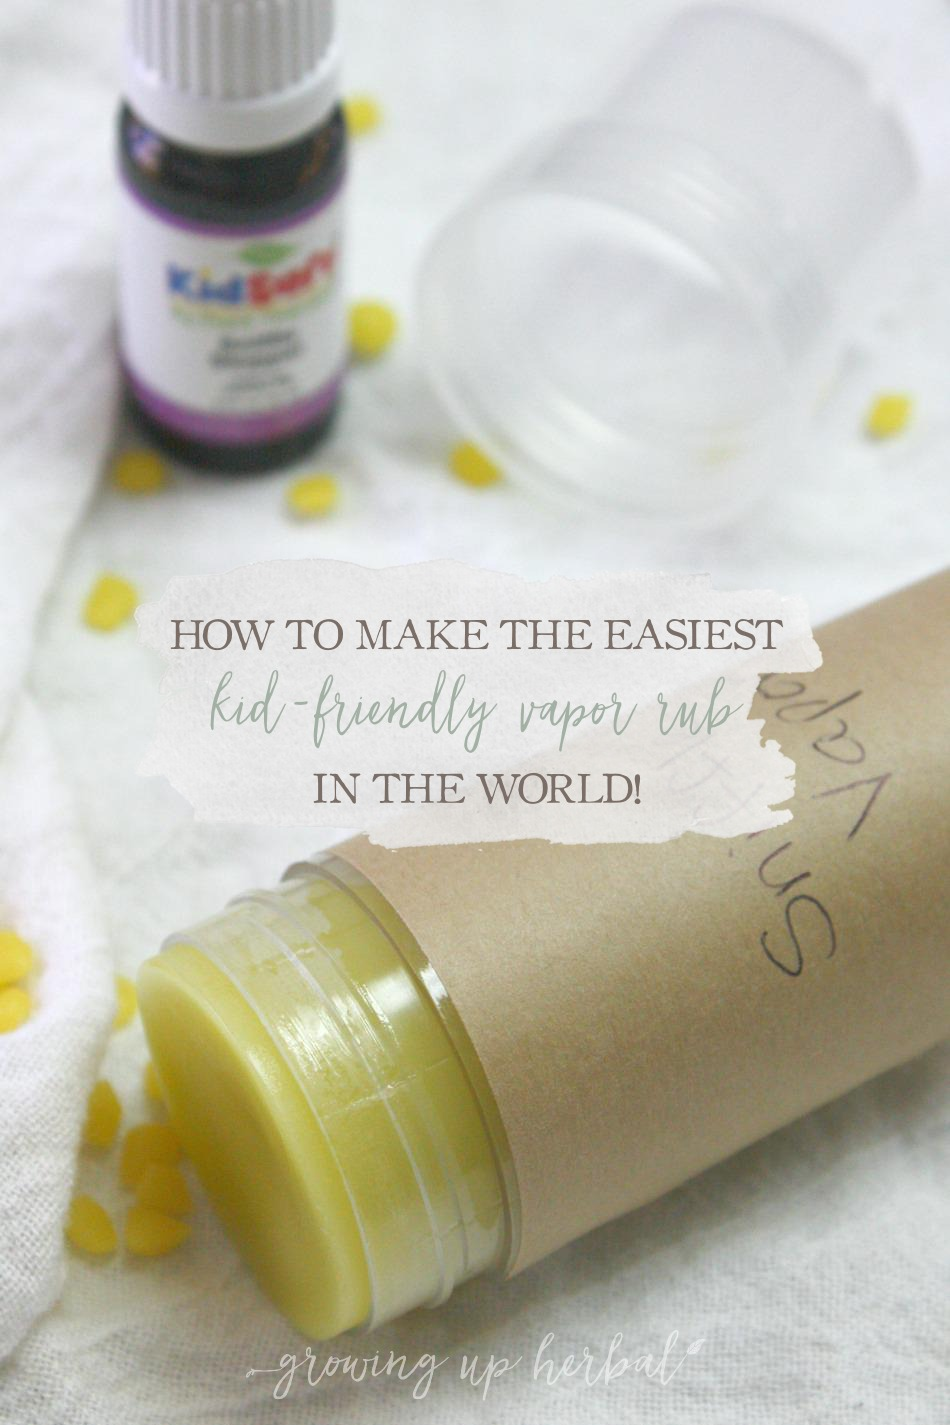 How To Make The Easiest Kid-Friendly Vapor Rub In The World | Growing Up Herbal | Can't find a vapor rub that contains safe essential oils for your little one? Here you go!